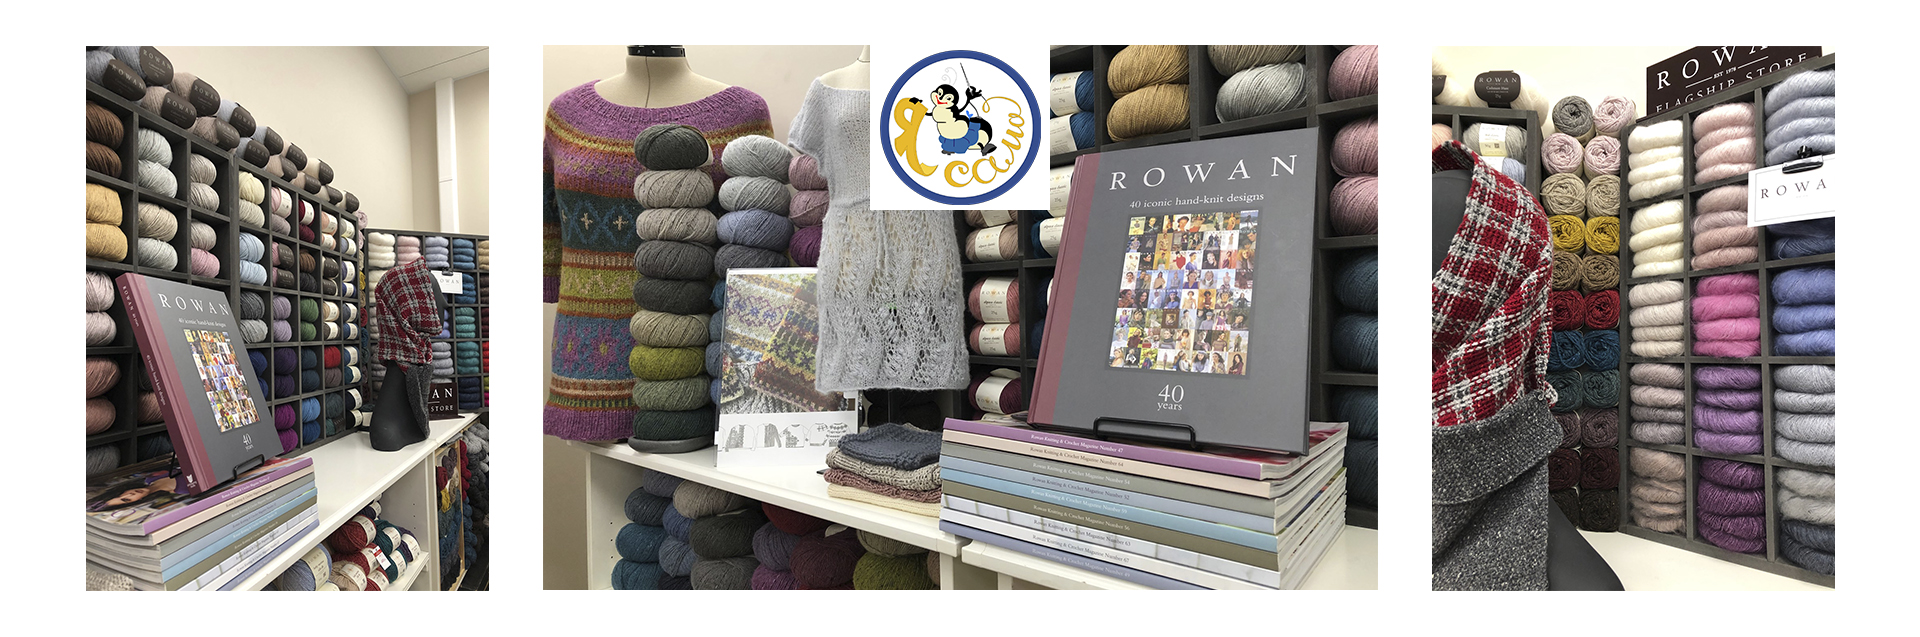 "The chain store ""Ya Sama"" has been providing its customers with the highest quality products for handicraft during 22 years."